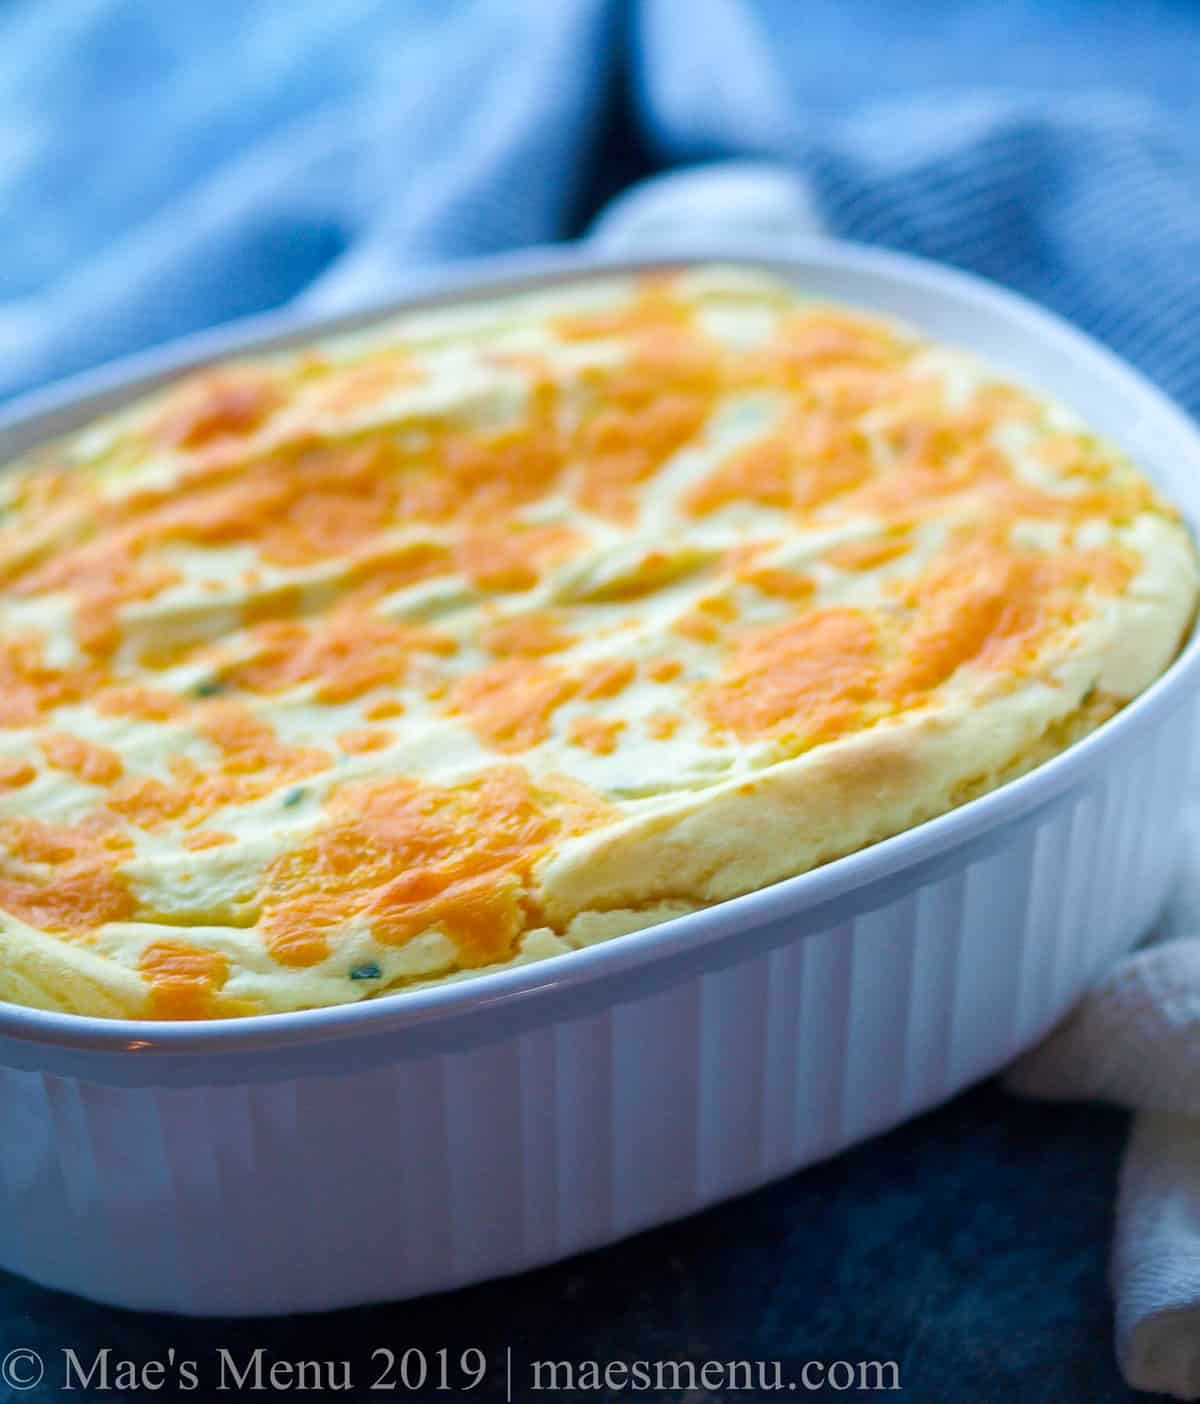 Twice baked potato souffle.